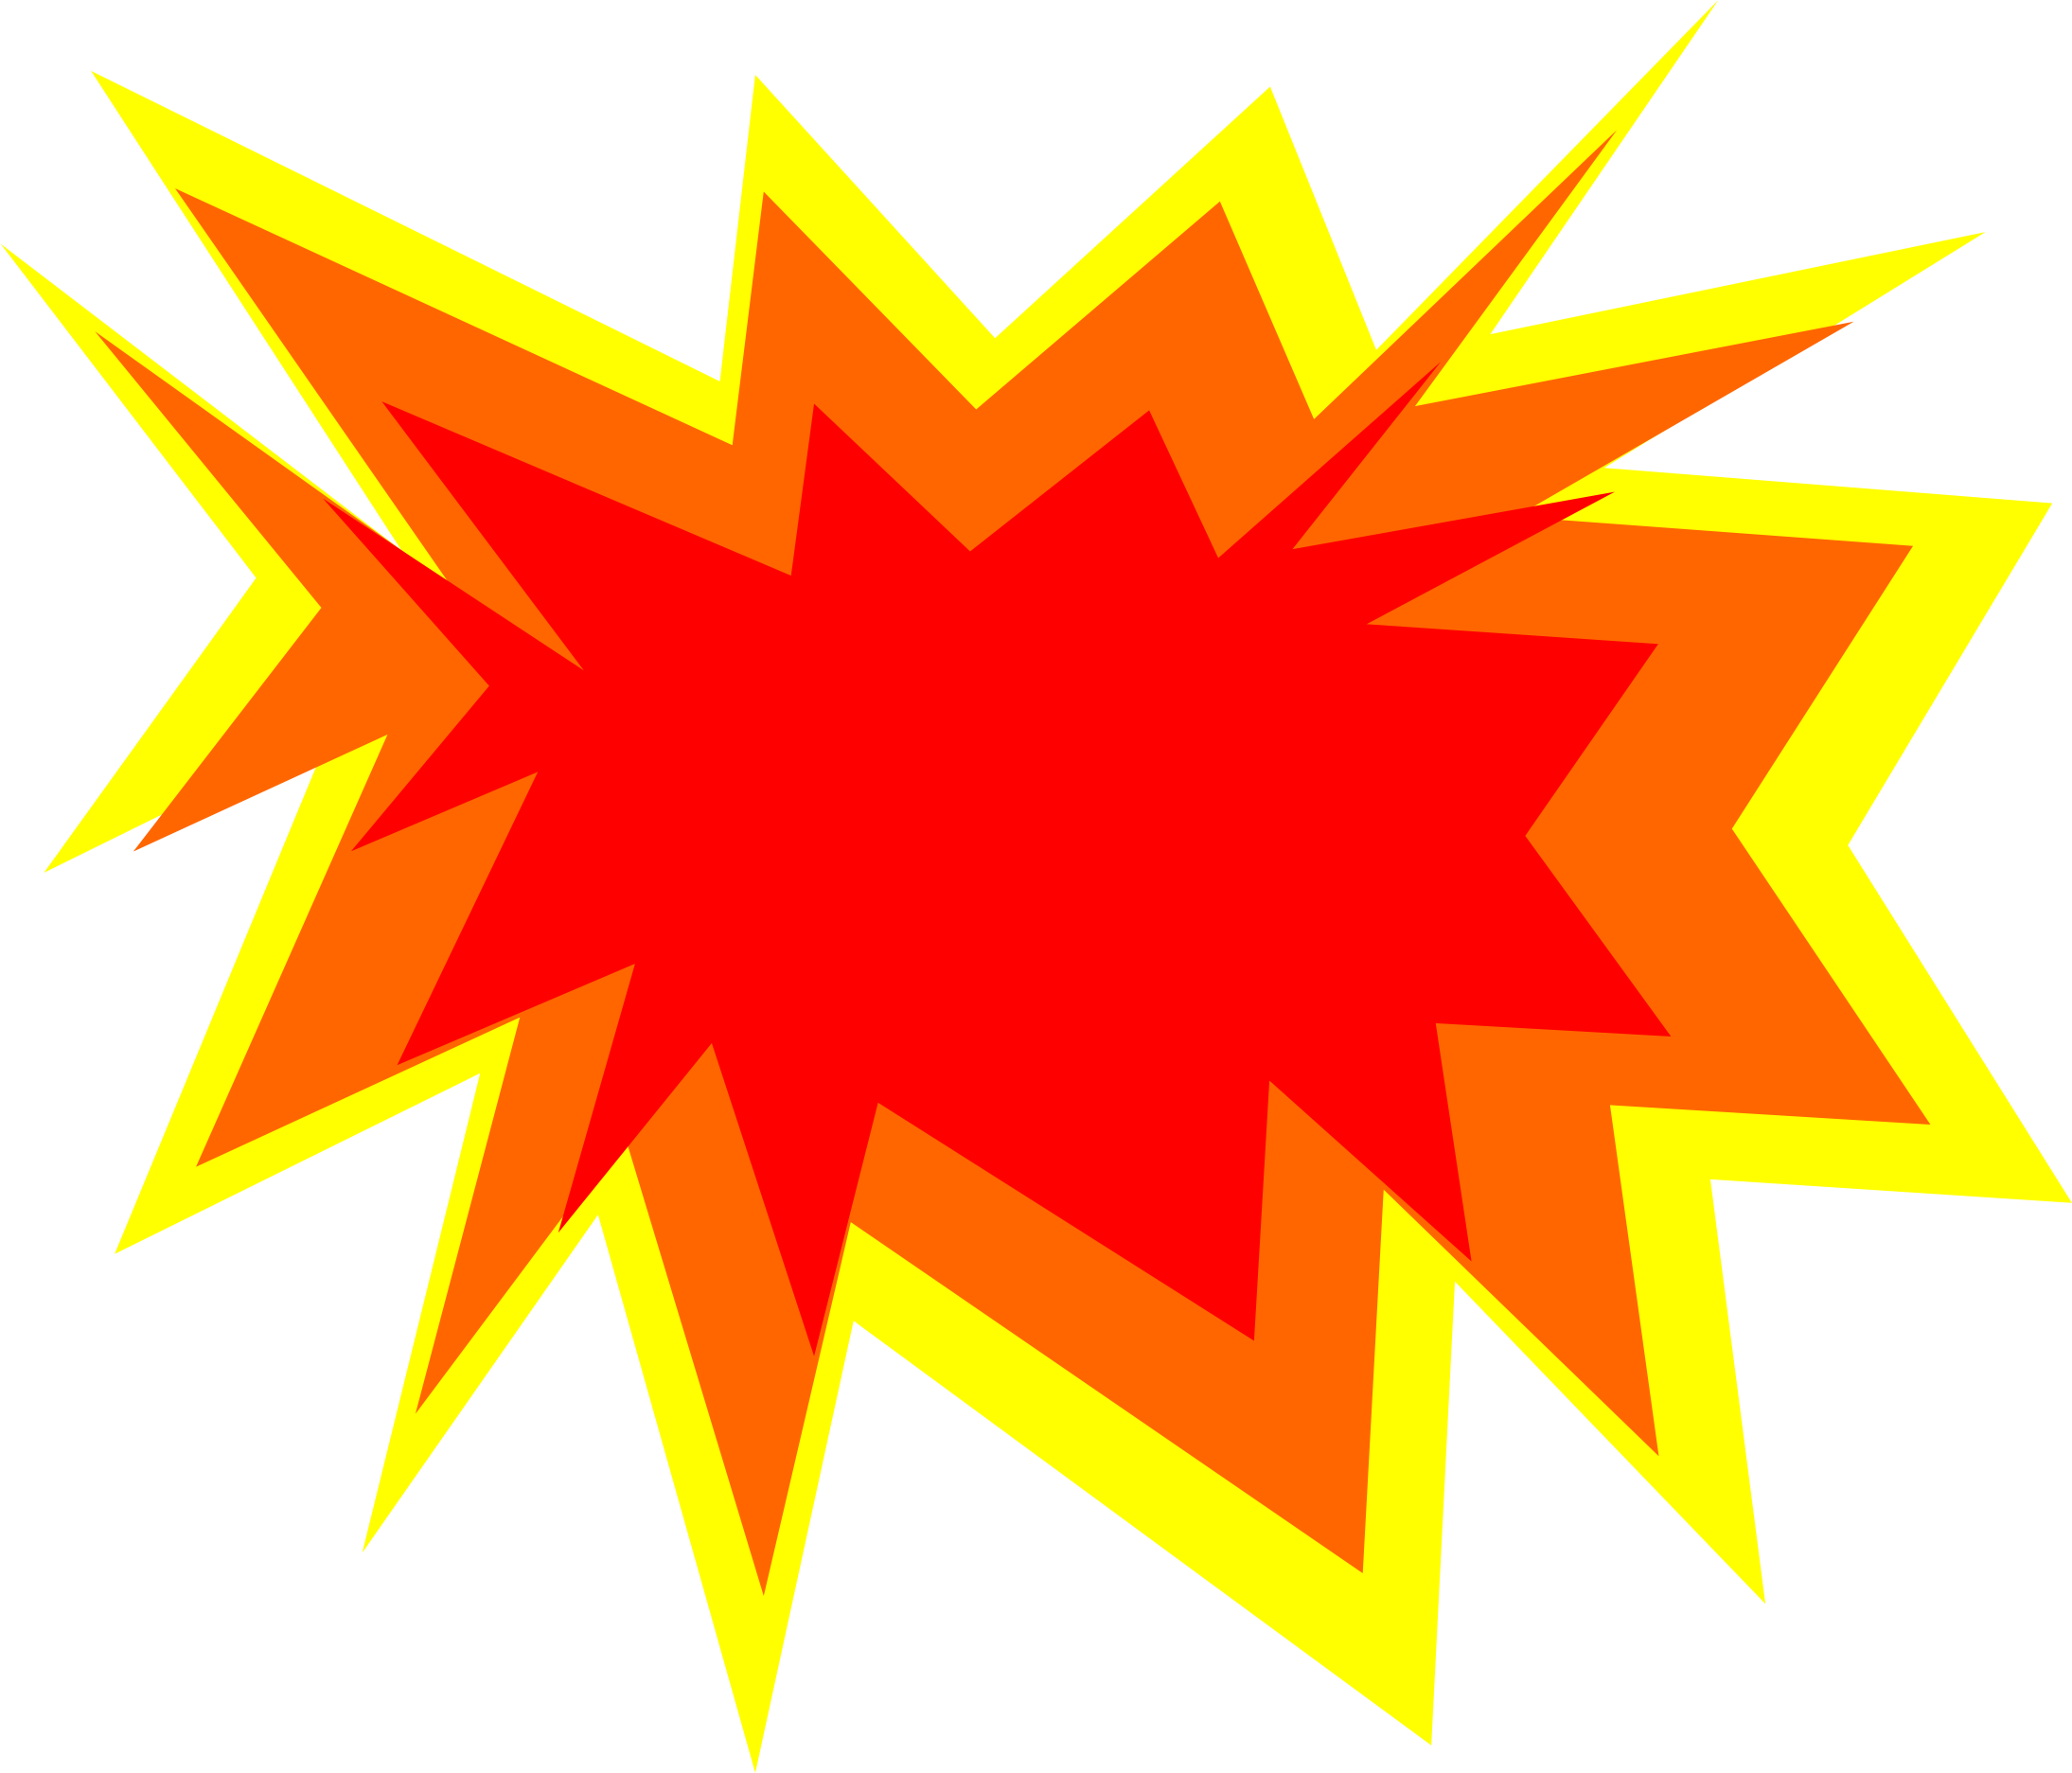 animated explosion clipart suggest #14271